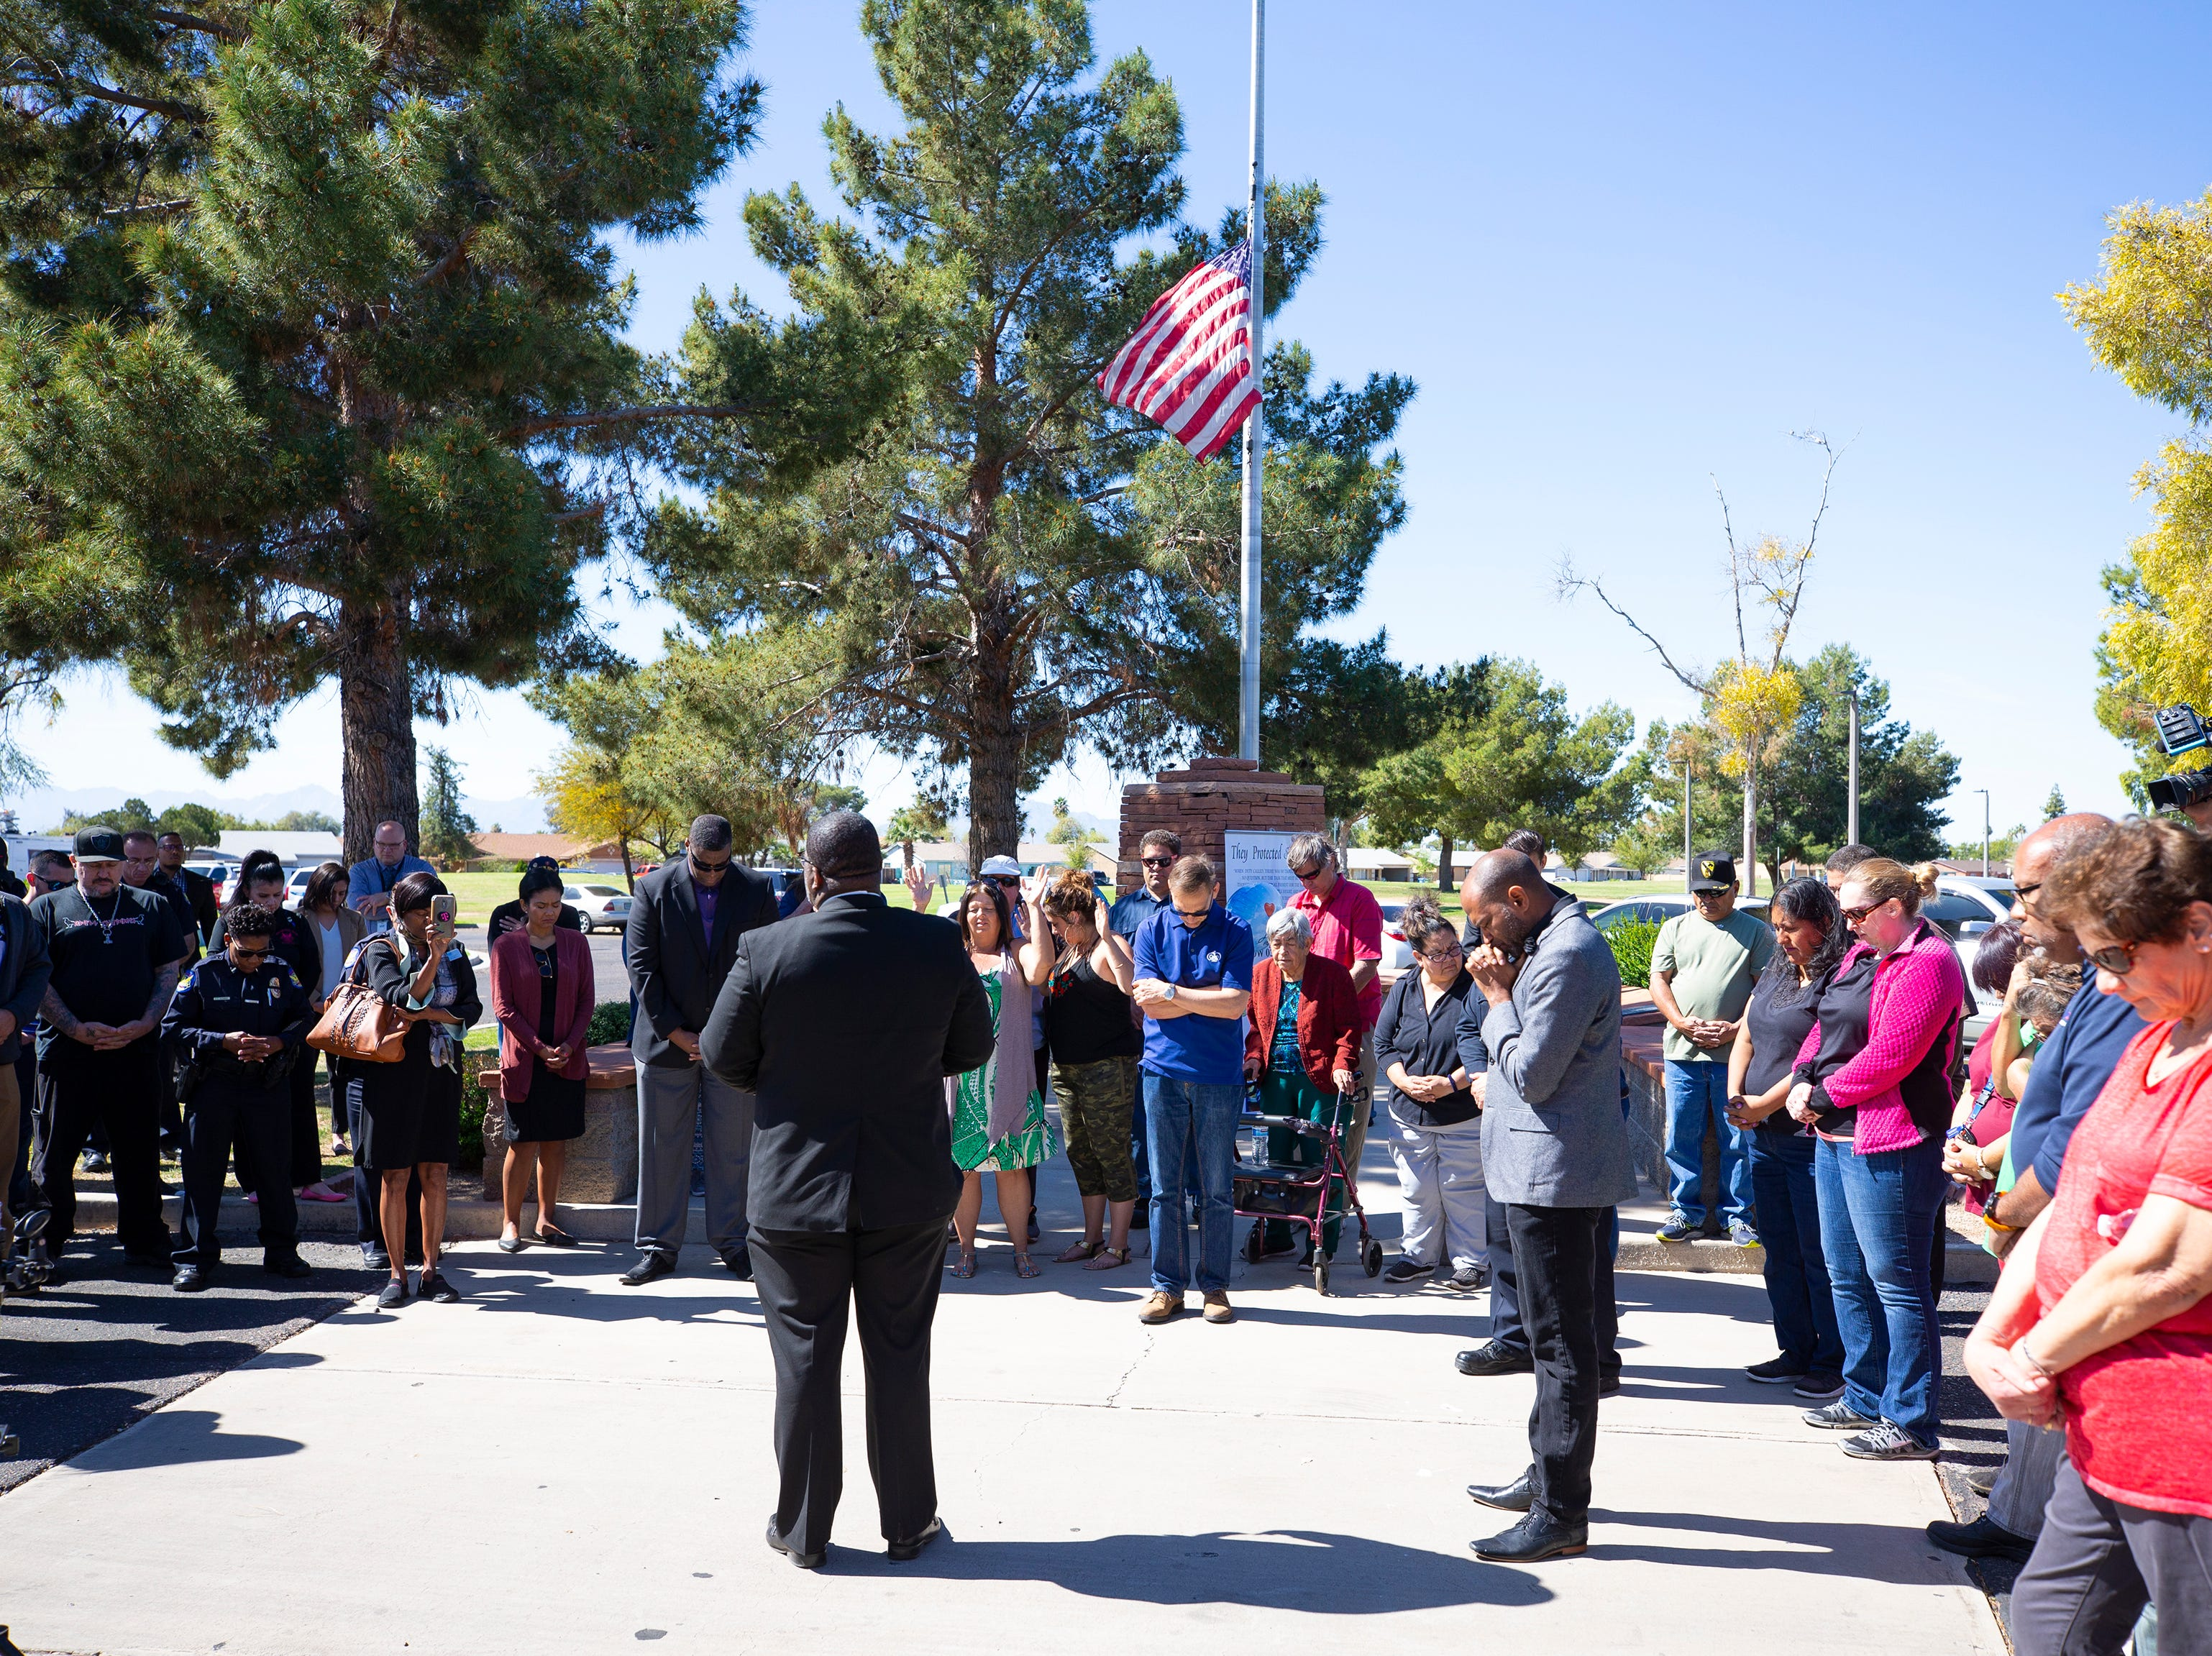 The Faith and Justice Project host a prayer service March 22, 2019, outside Phoenix Police Maryvale Precinct for Officer Paul Rutherford, who was killed in a crash March 21.